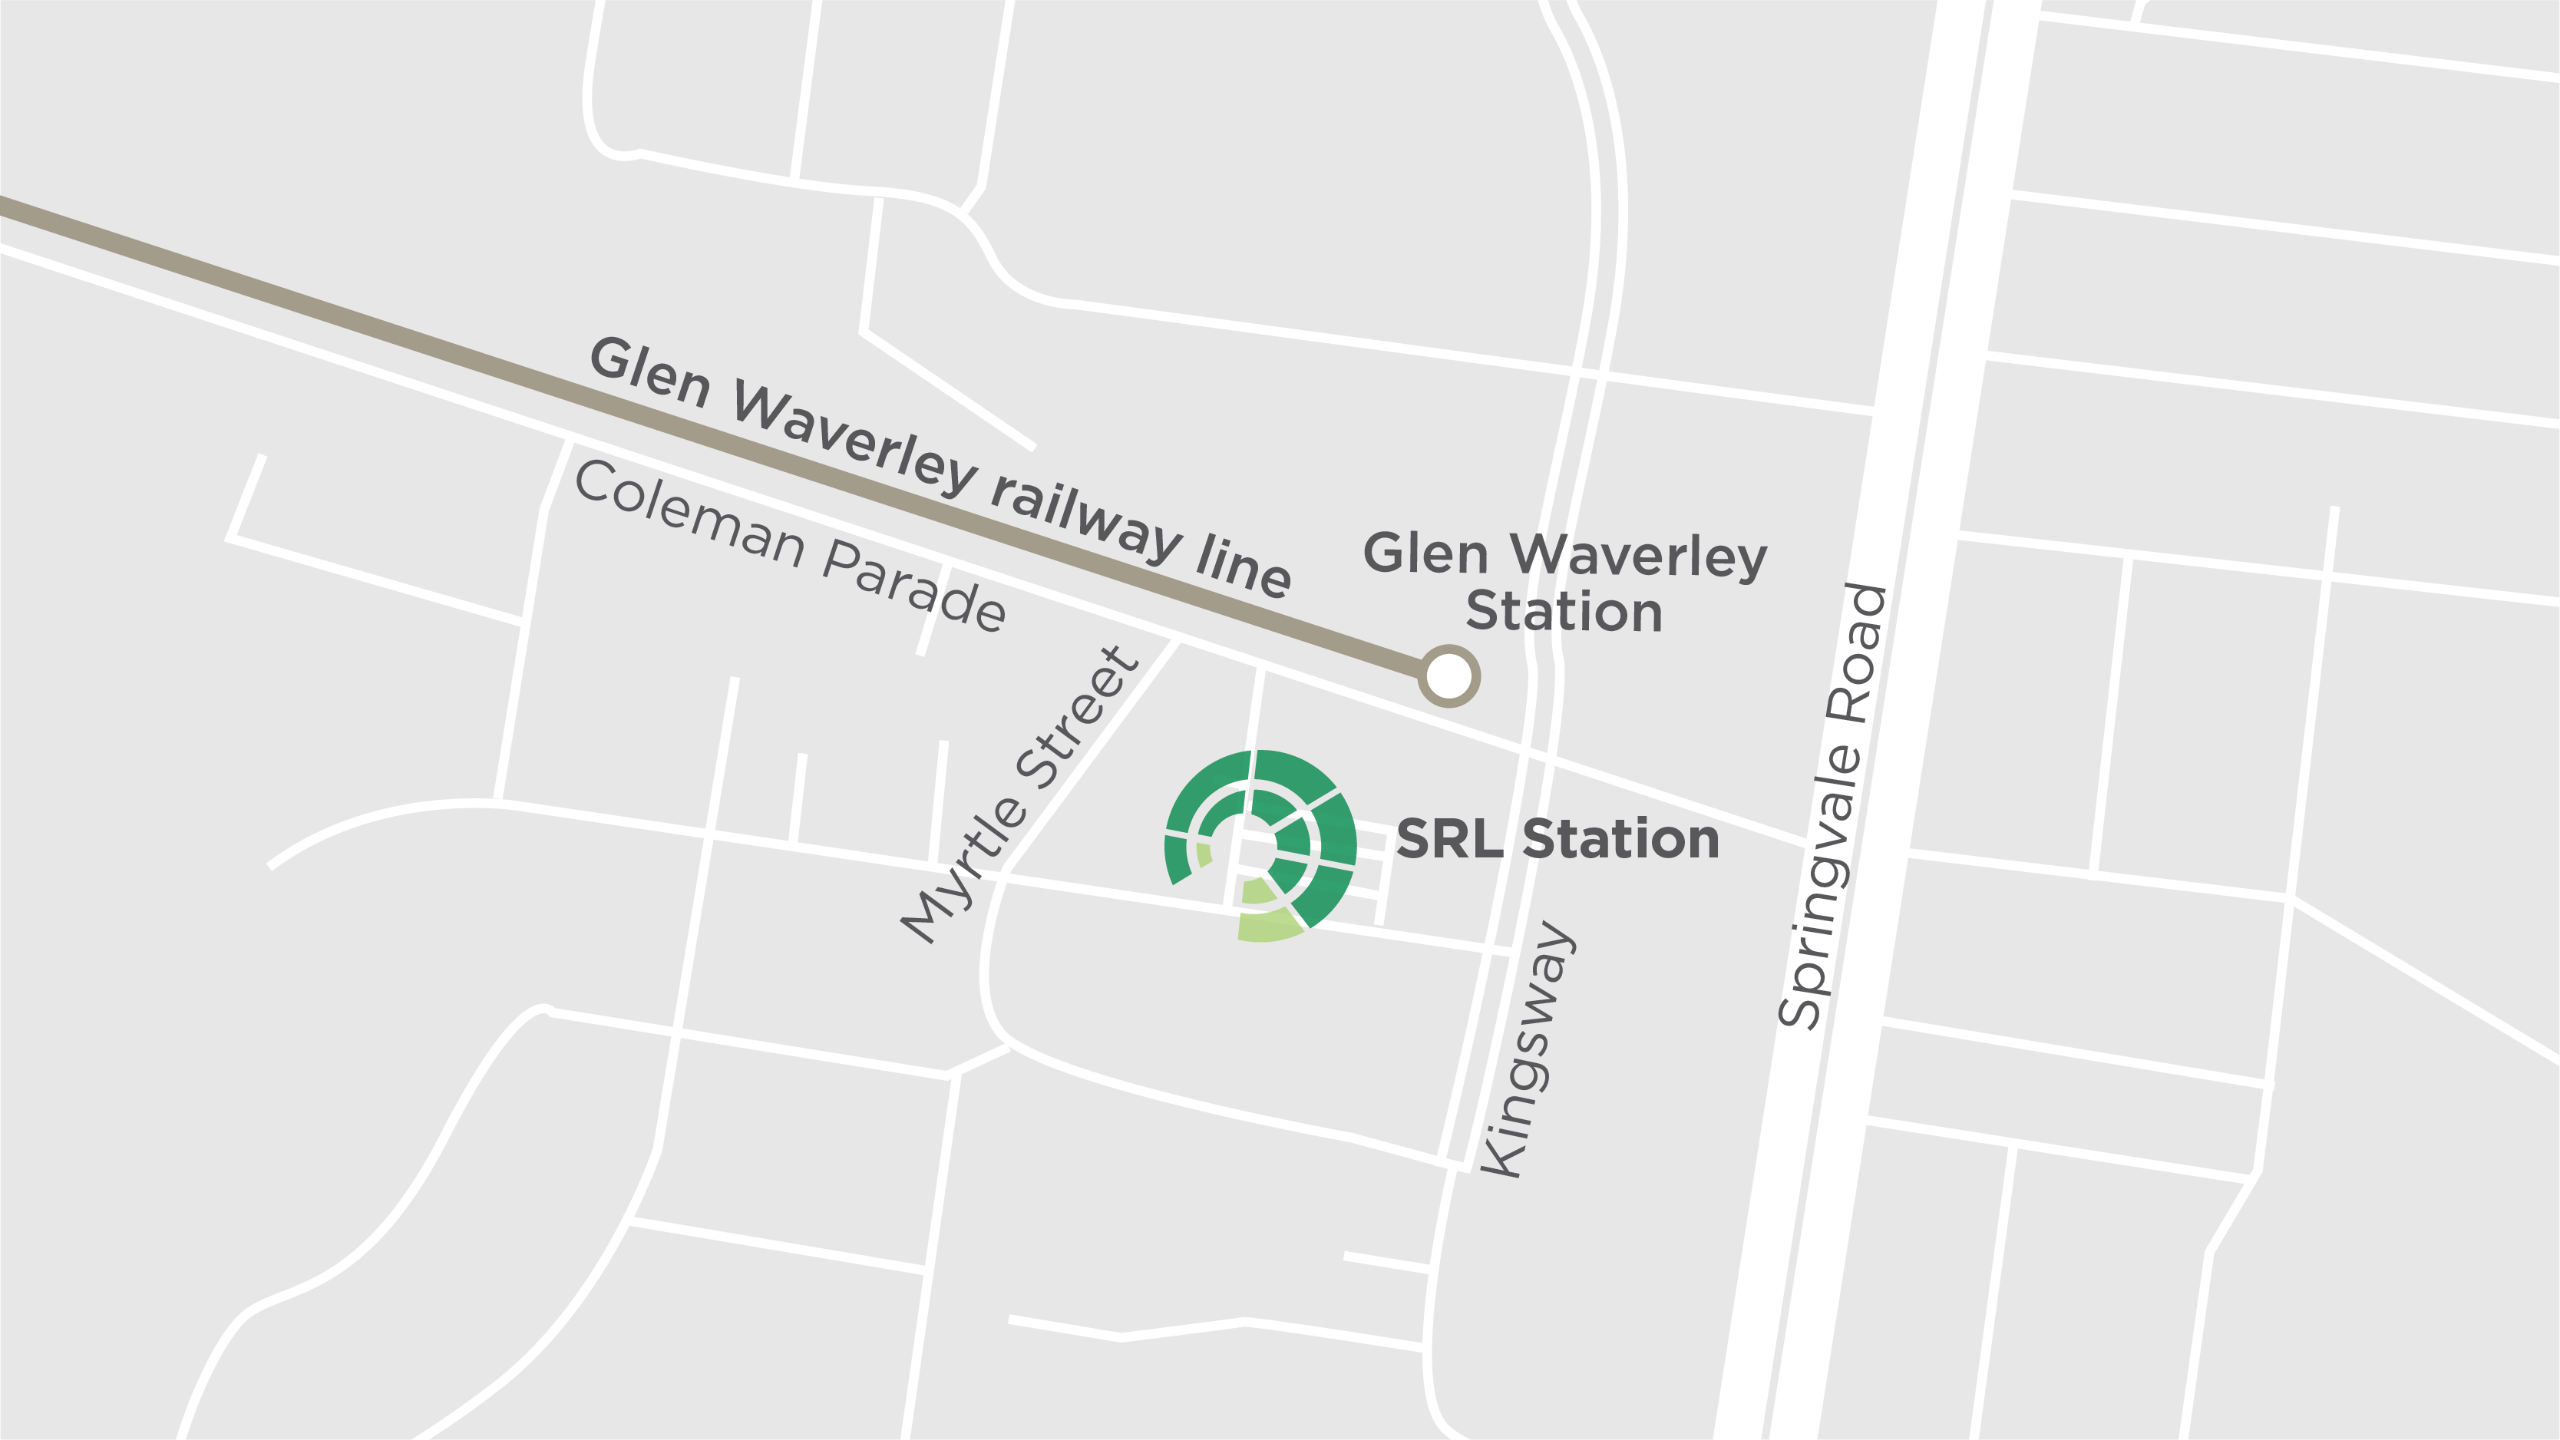 This map shows the new Suburban Rail Loop underground train station at Glen Waverley, proposed to be located west of Springvale Road.